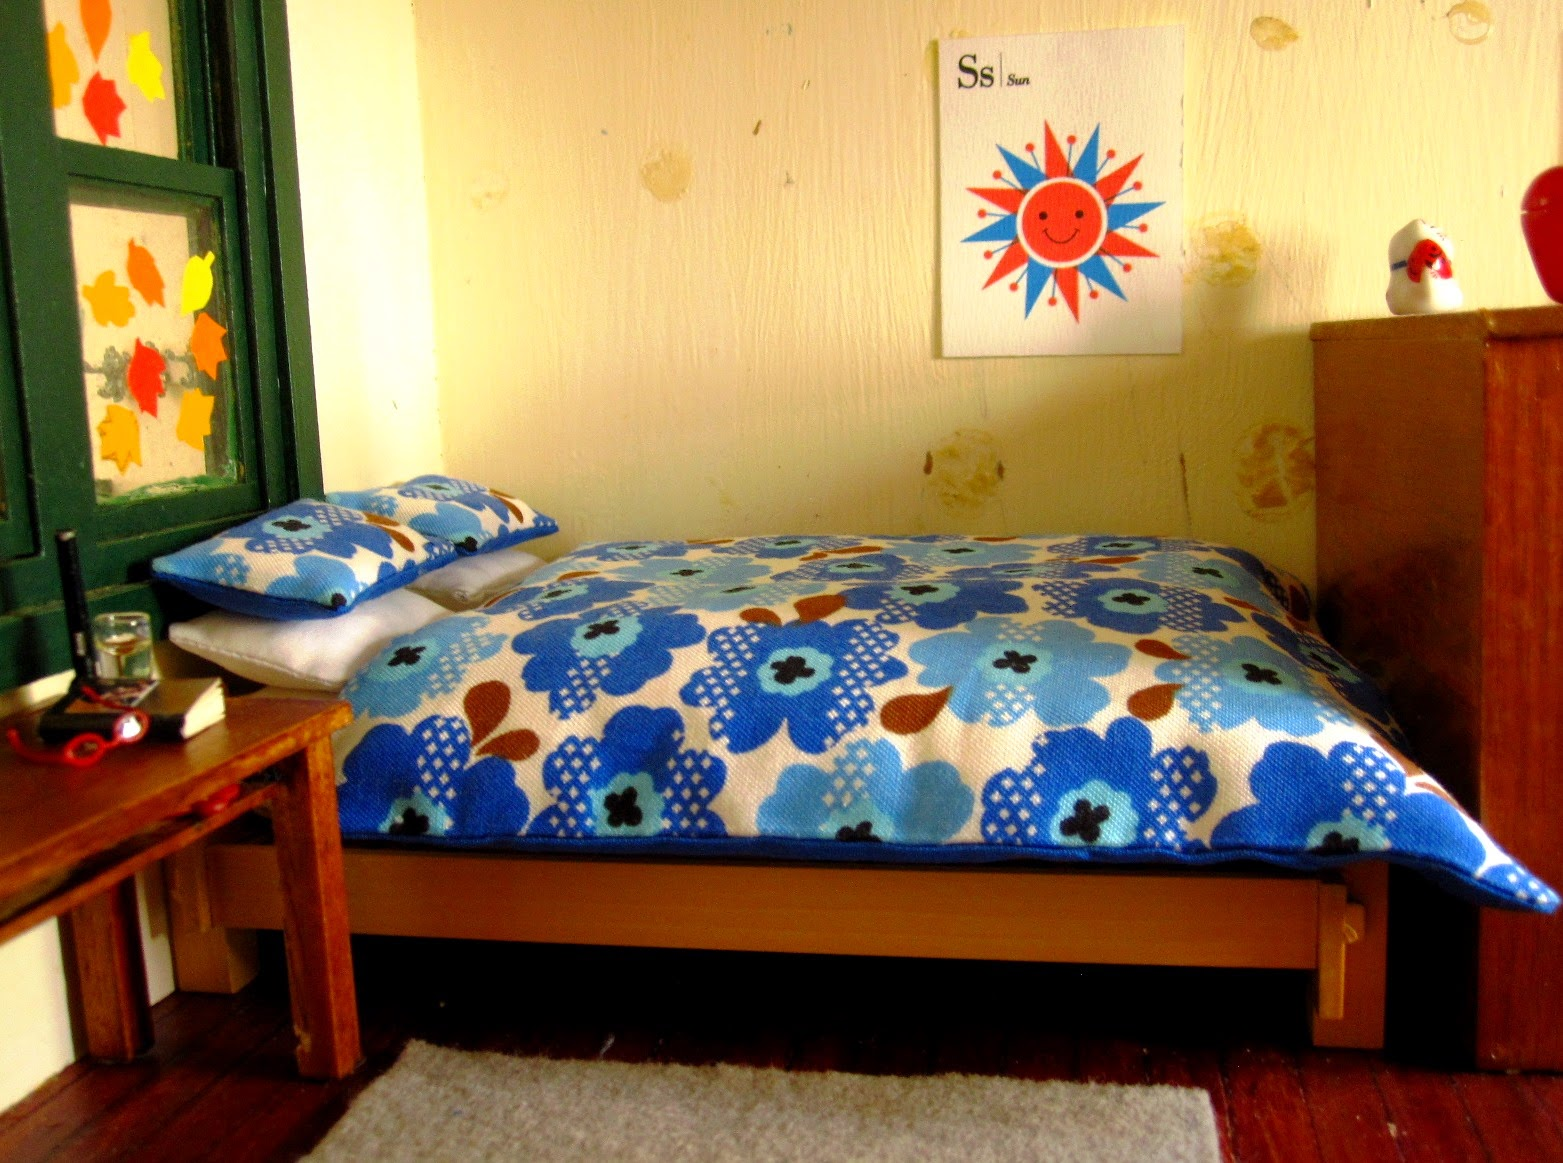 Bed with Marimekko-esque bedding in the corner of a miniature holiday house.